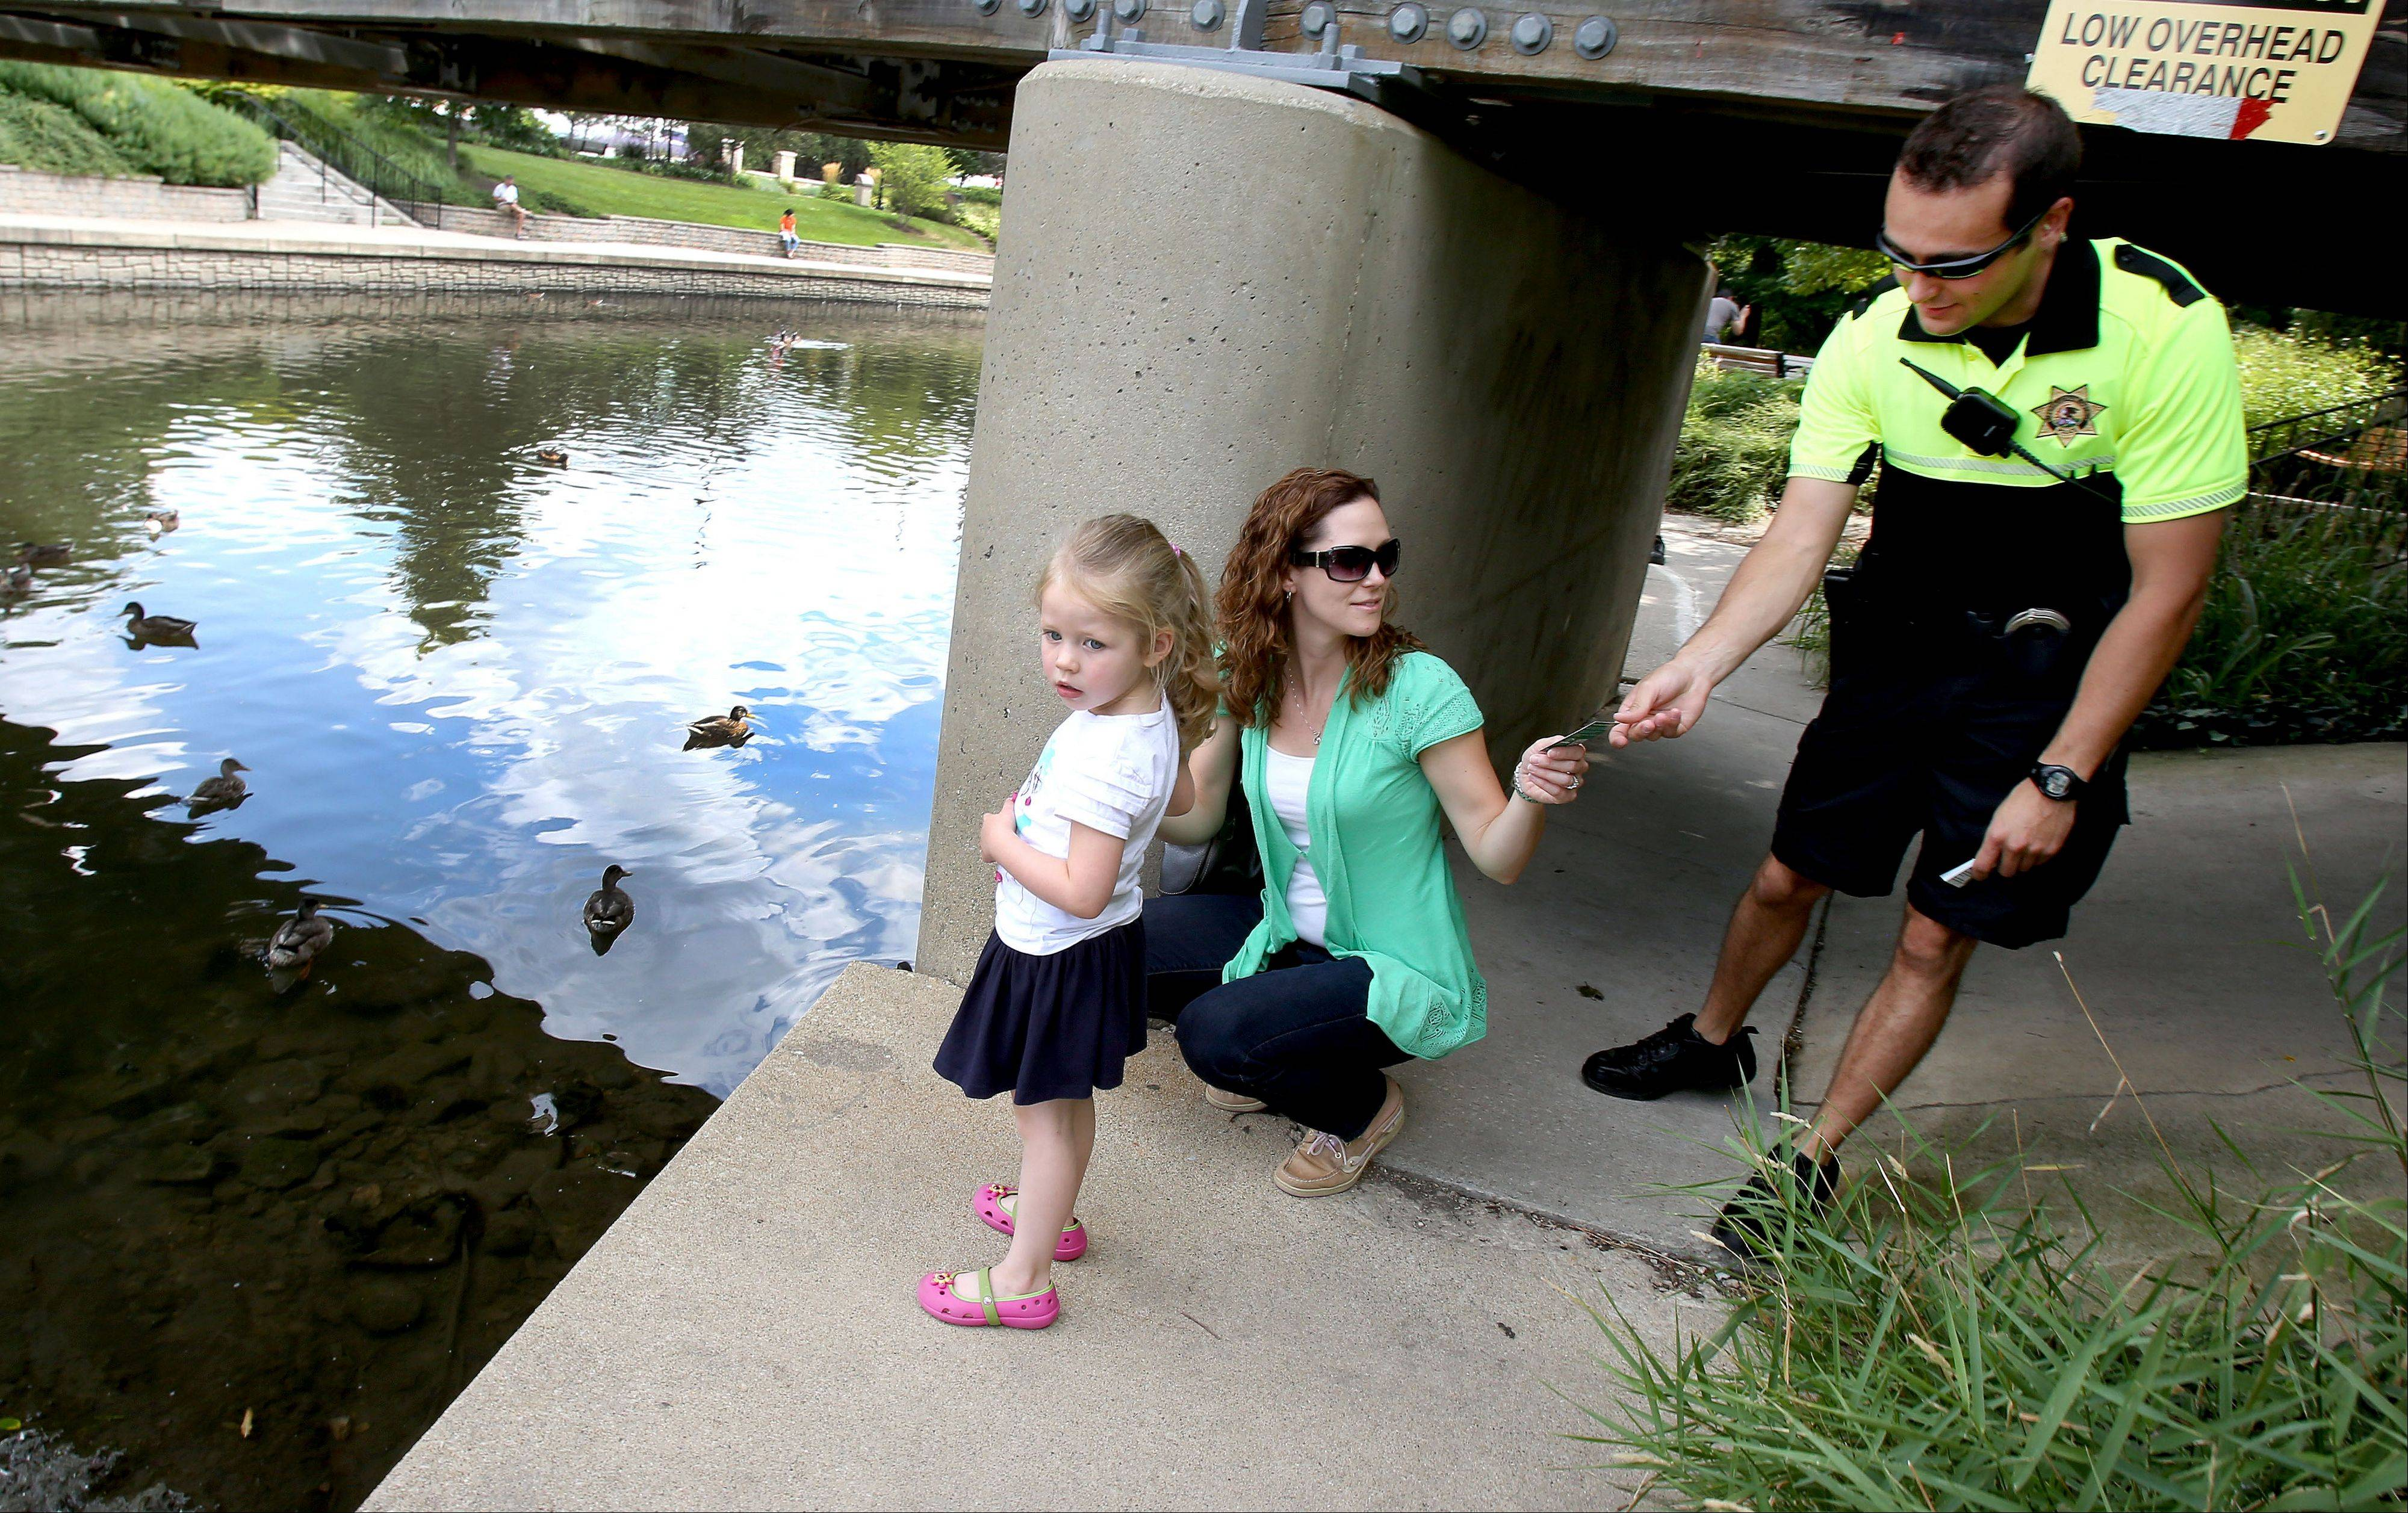 Naperville Park District police officer Patrick Ryan gives Beth Louthain of Naperville a card, shown below, that reminds people not to feed the wildlife. Louthain was watching -- but not feeding -- the ducks with daughter Kendall, 4, along the Riverwalk.